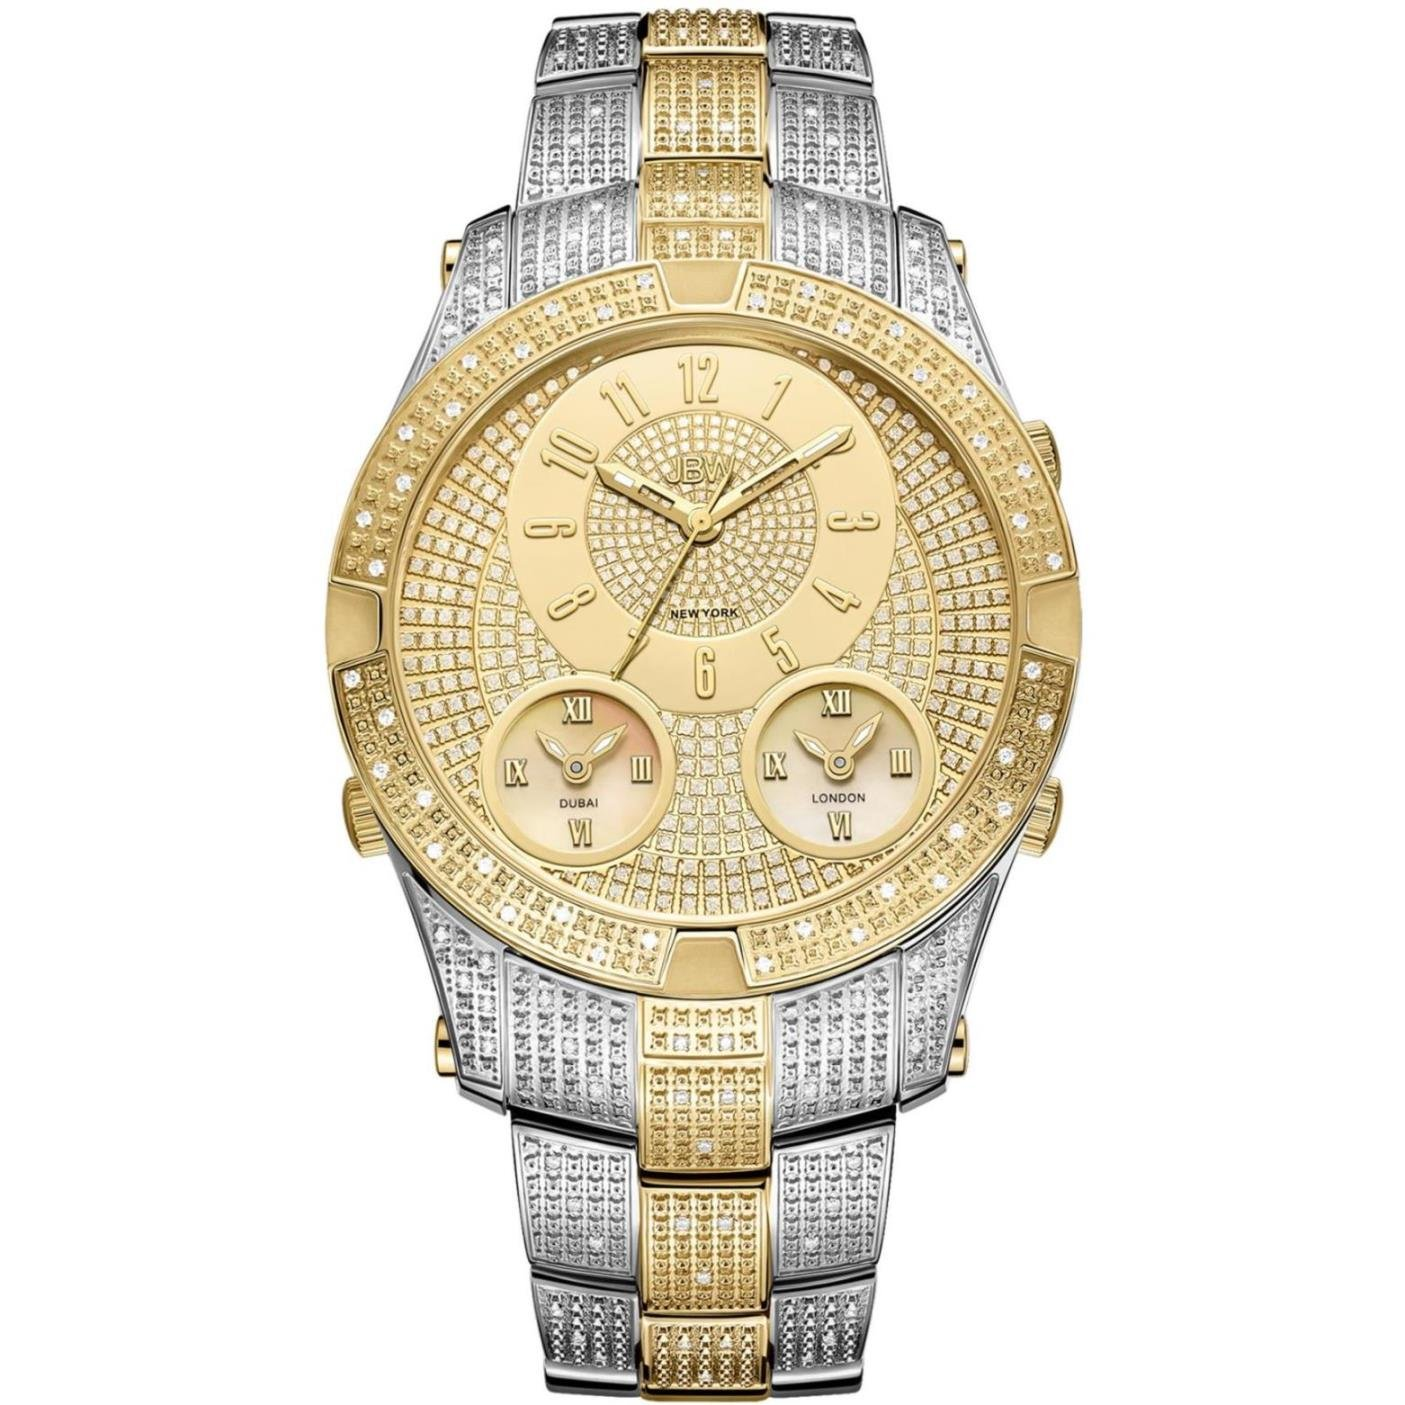 JBW Luxury Men s Jet Setter III 1.18 ctw Diamond Wrist Watch with Stainless Steel Link Bracelet